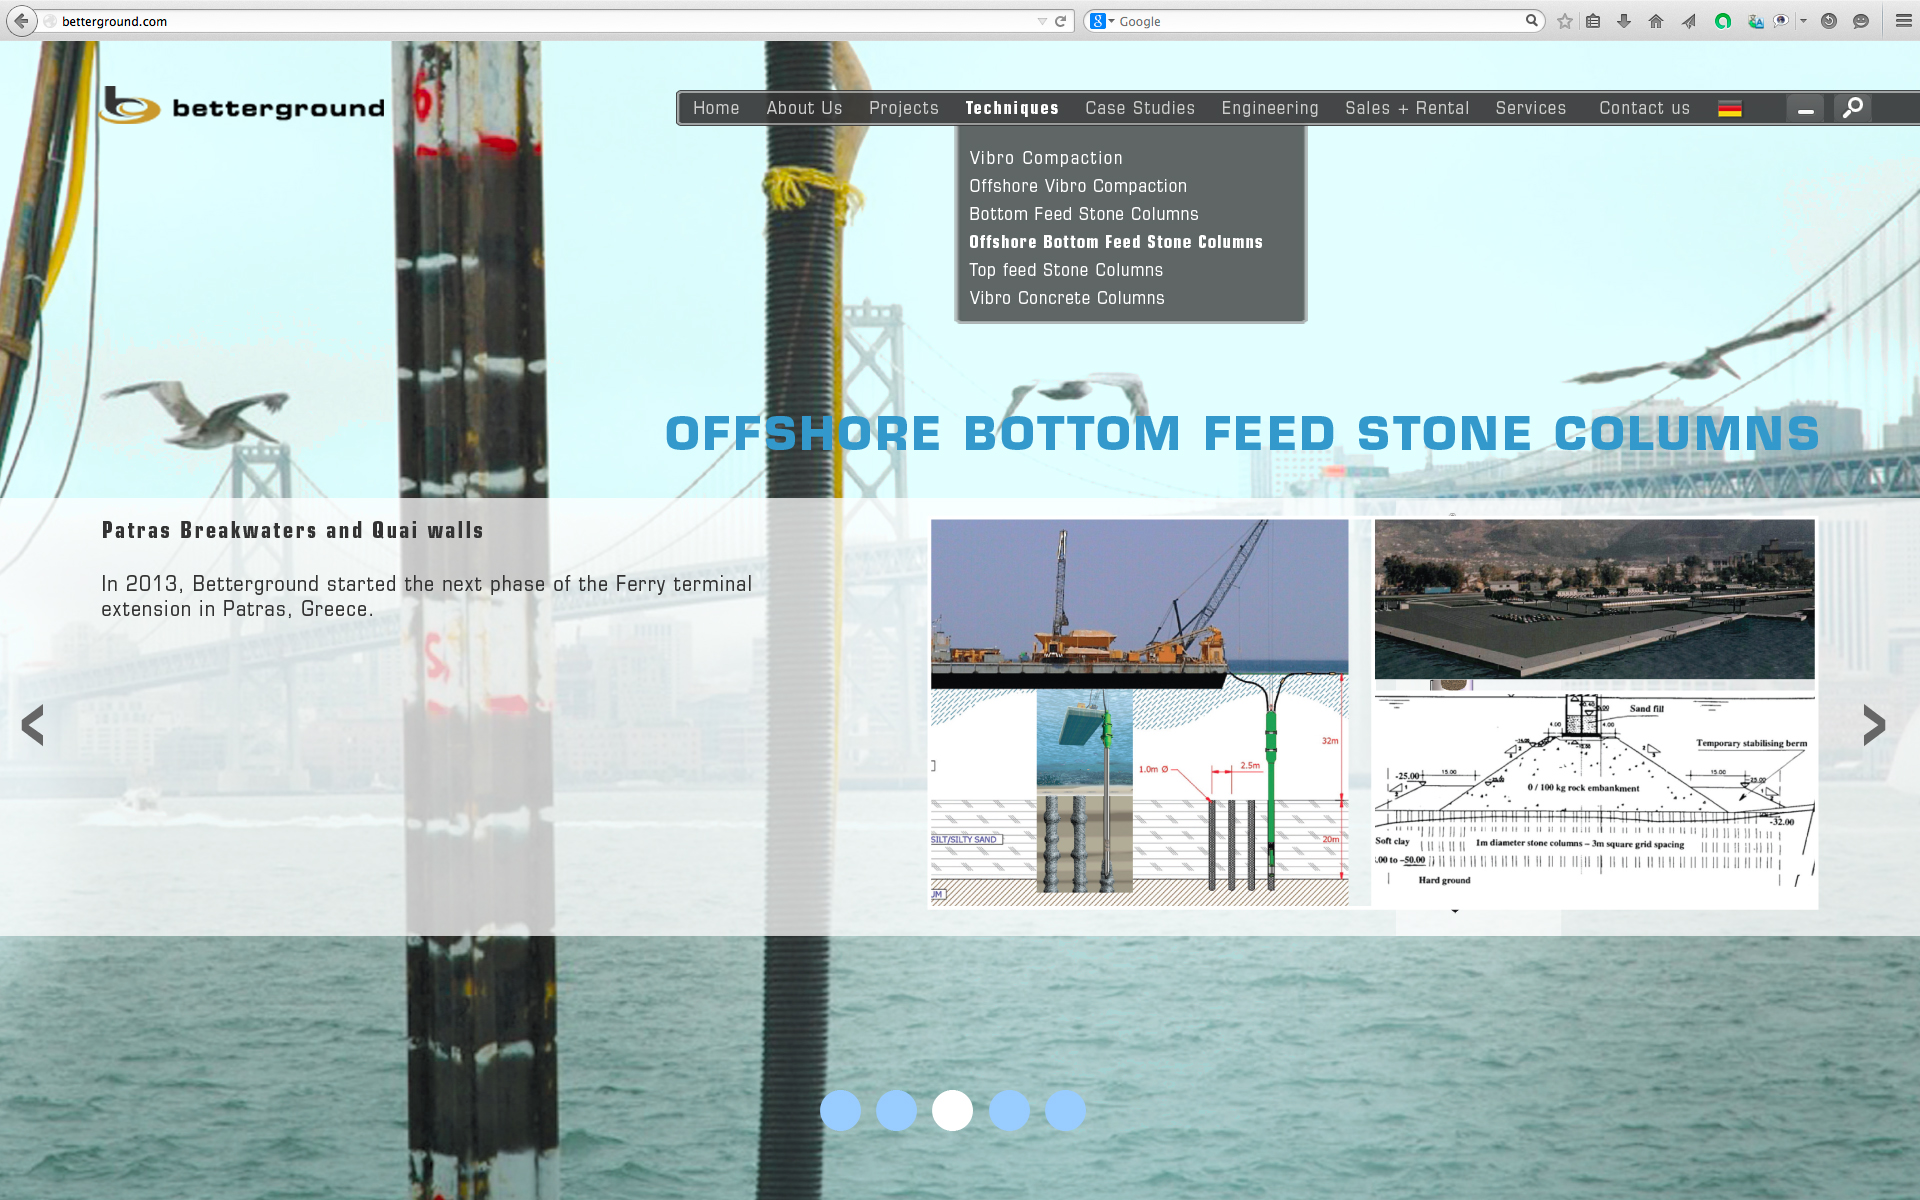 Offshore Bottom Feed Stone Columns 3